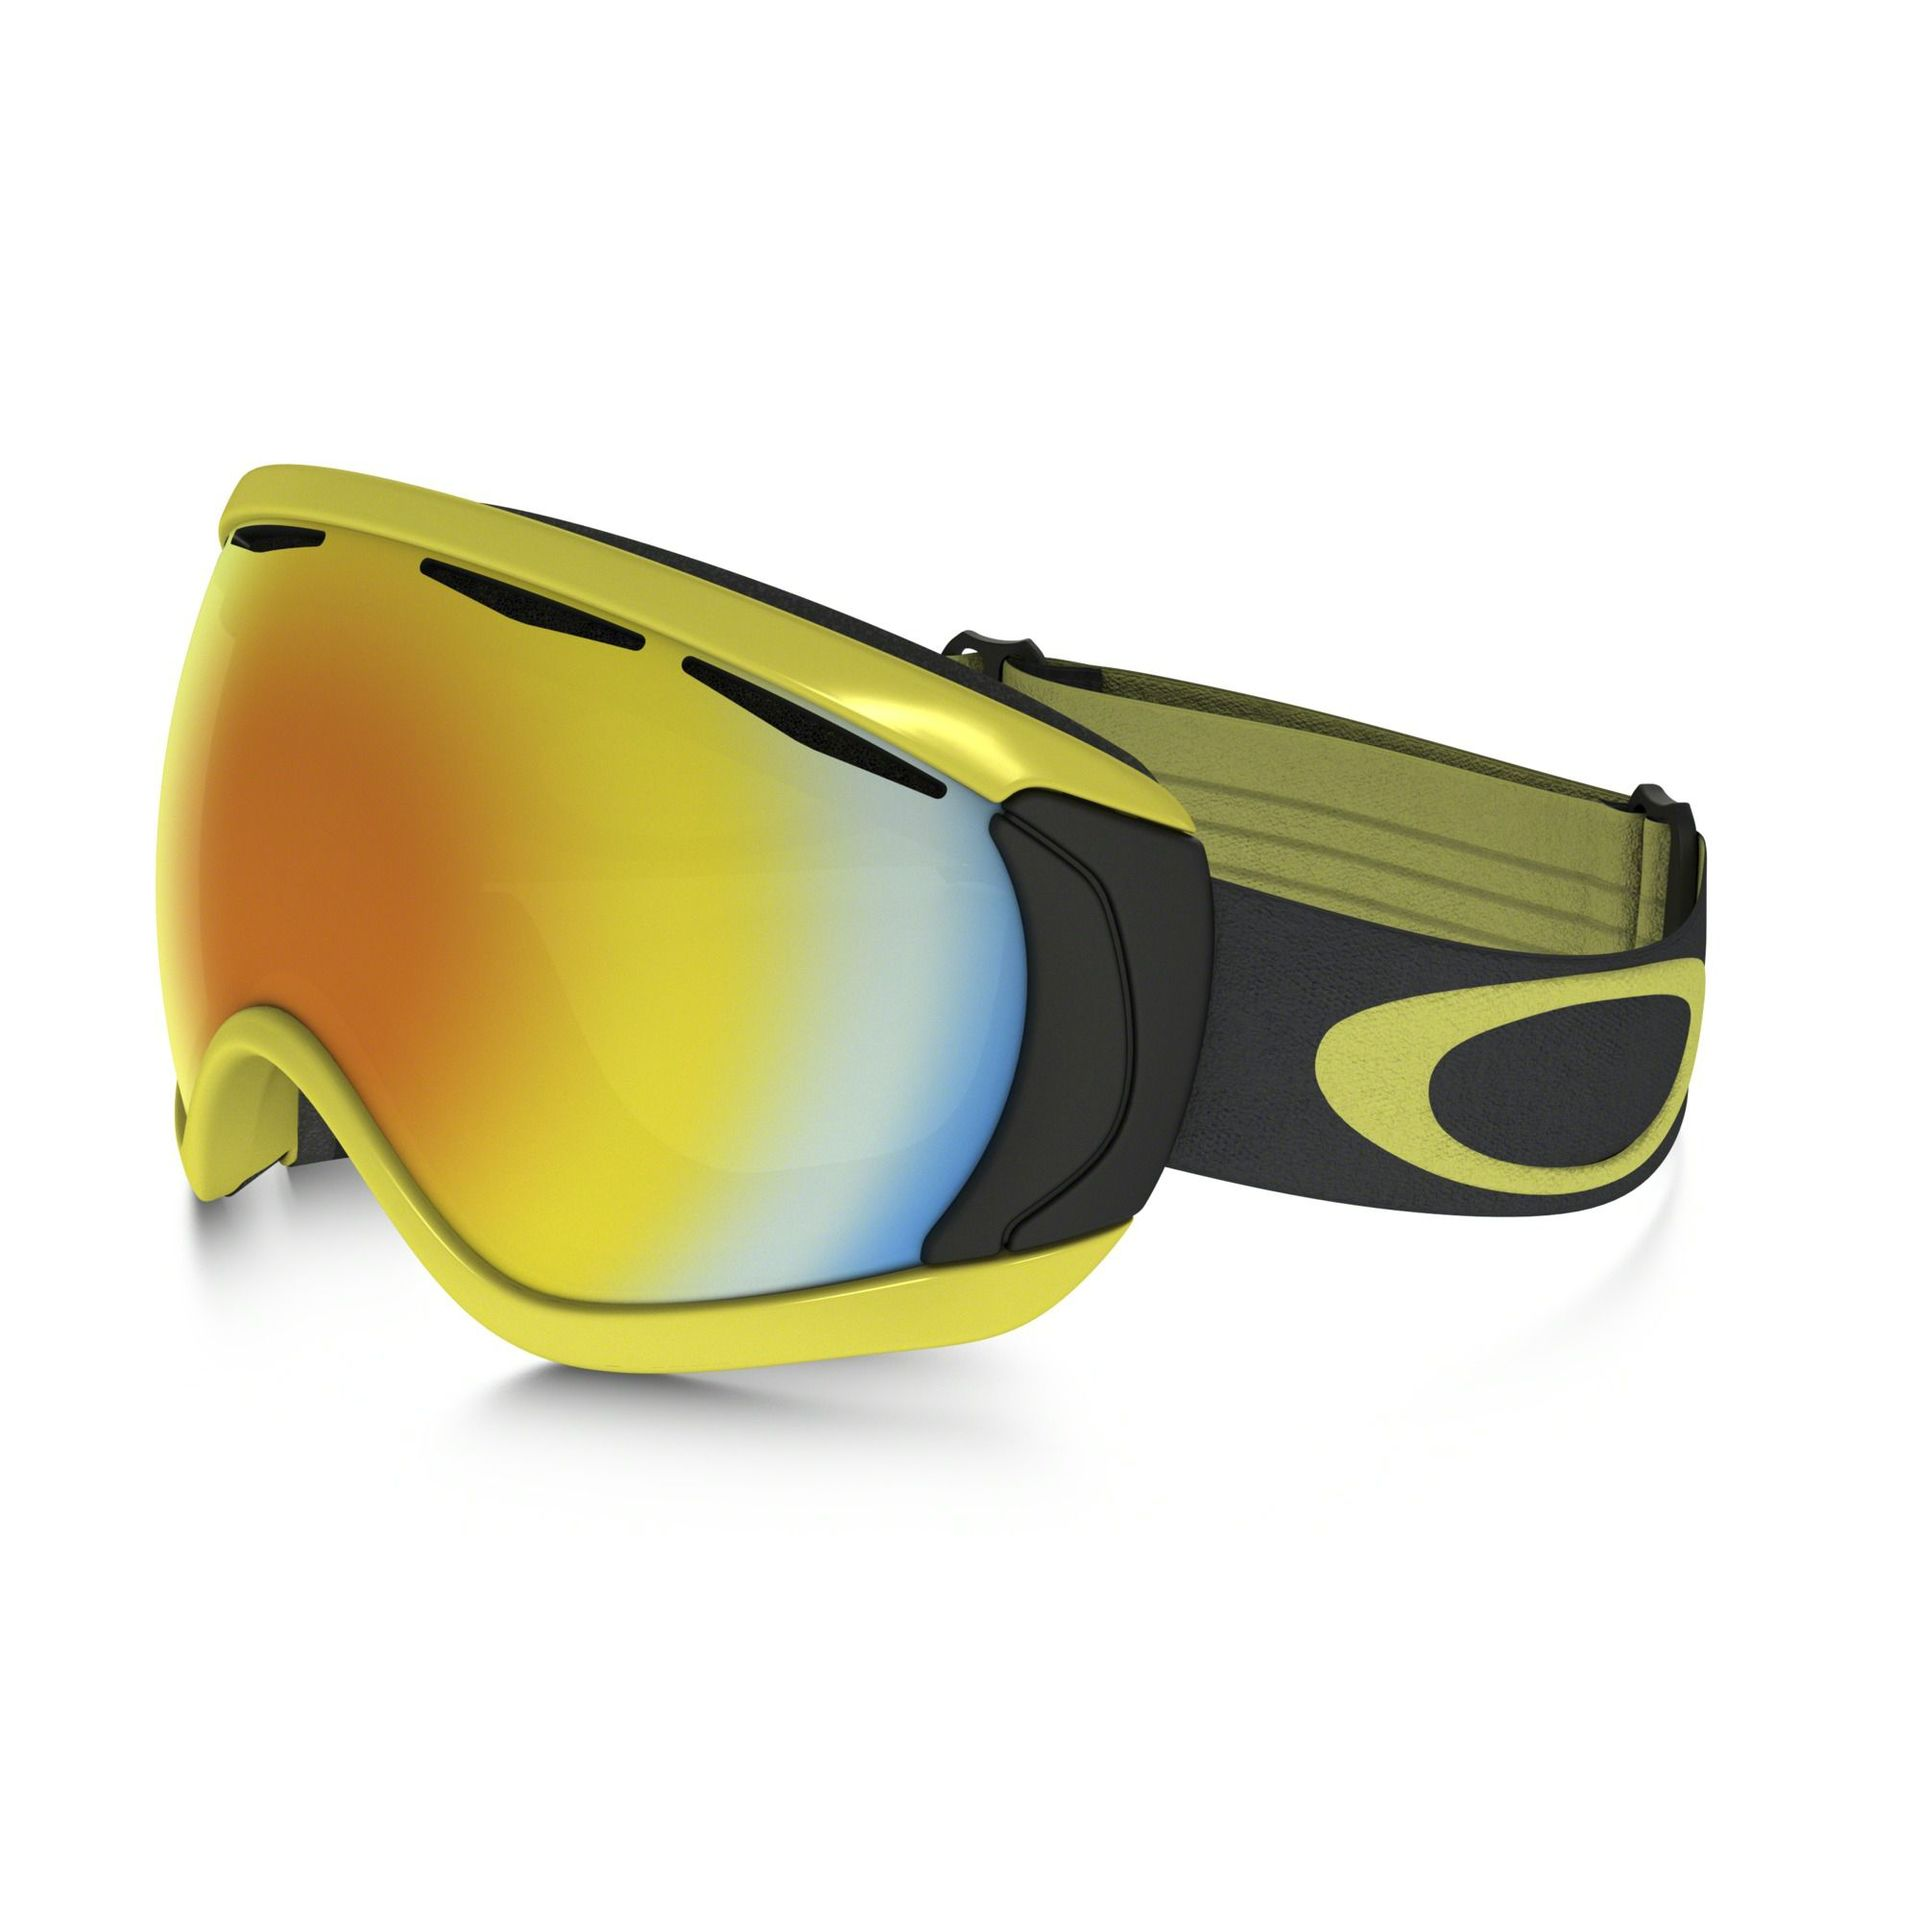 GOGLE OAKLEY CANOPY CITRUS IRON FIRE IRIDIUM